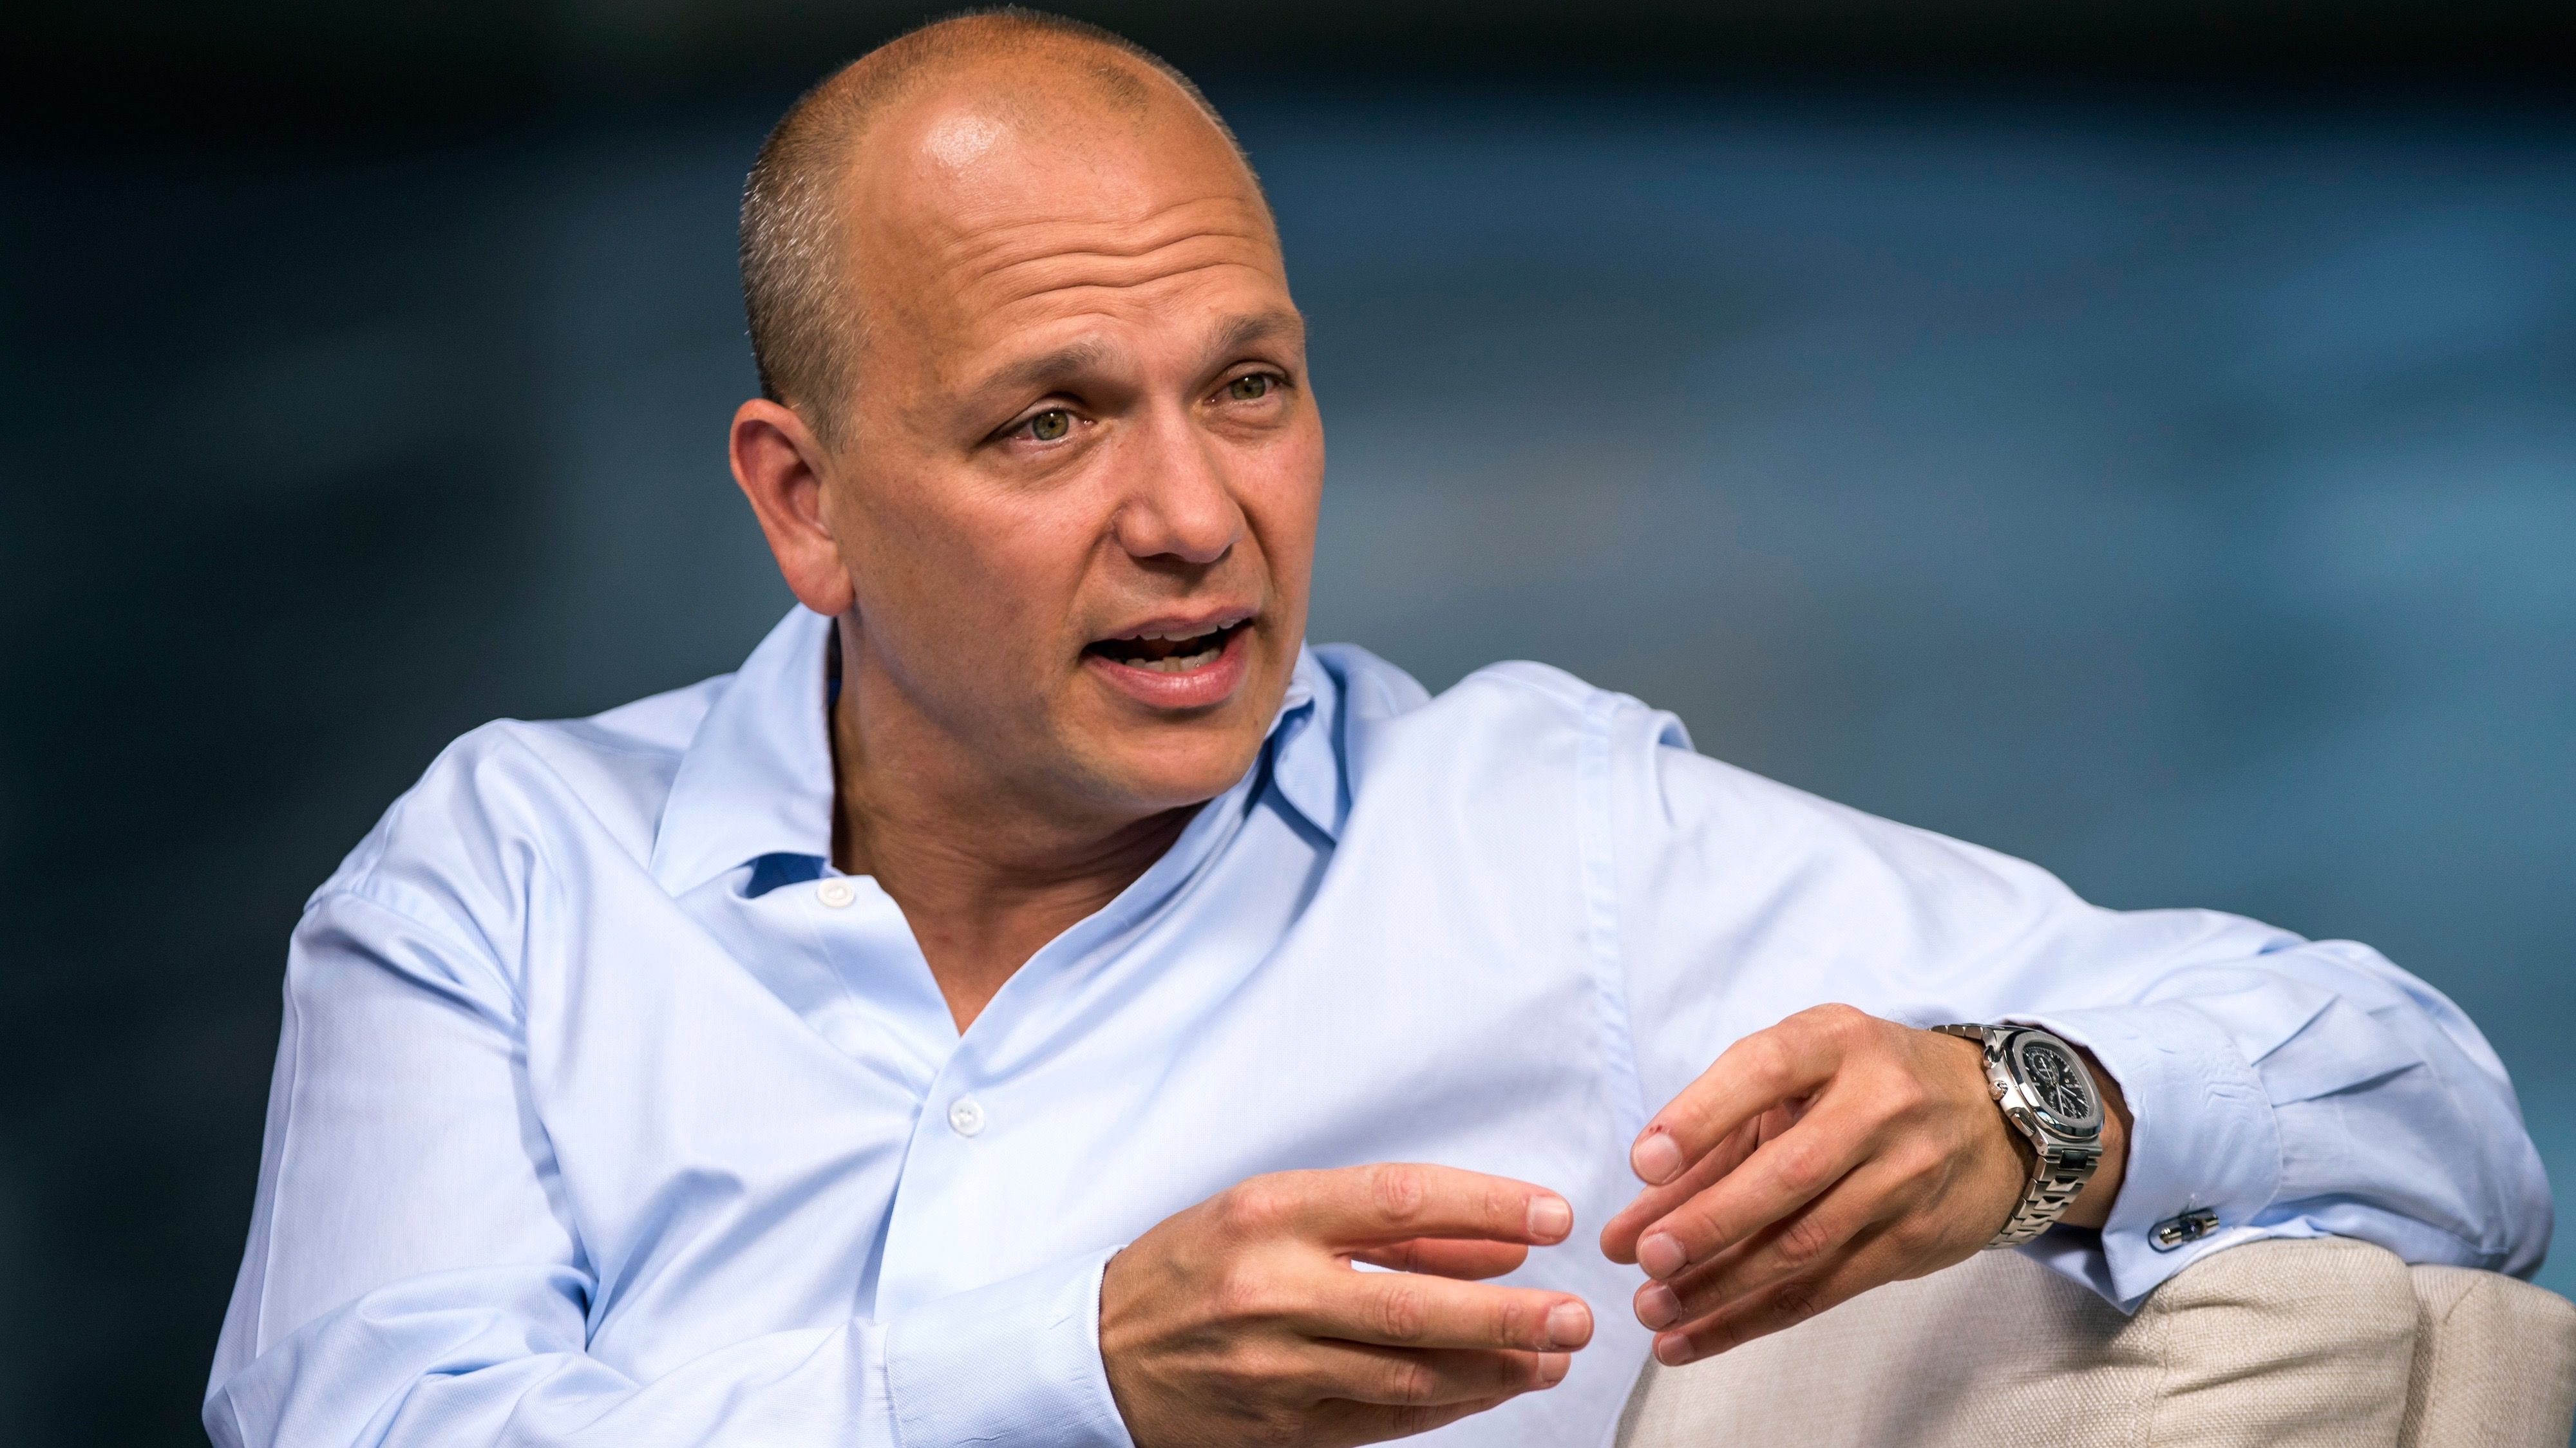 Tony Fadell, founder and chief executive officer of Nest Labs Inc., speaks during a Bloomberg Studio 1.0 interview in San Francisco, California, U.S., on Wednesday, July 29, 2015. Nest Labs Inc. designs and manufactures wifi enabled learning and programmable devices such as thermostats, smoke detectors and security cameras for the home. Photographer: David Paul Morris/Bloomberg  *** Local Caption *** Tony Fadell